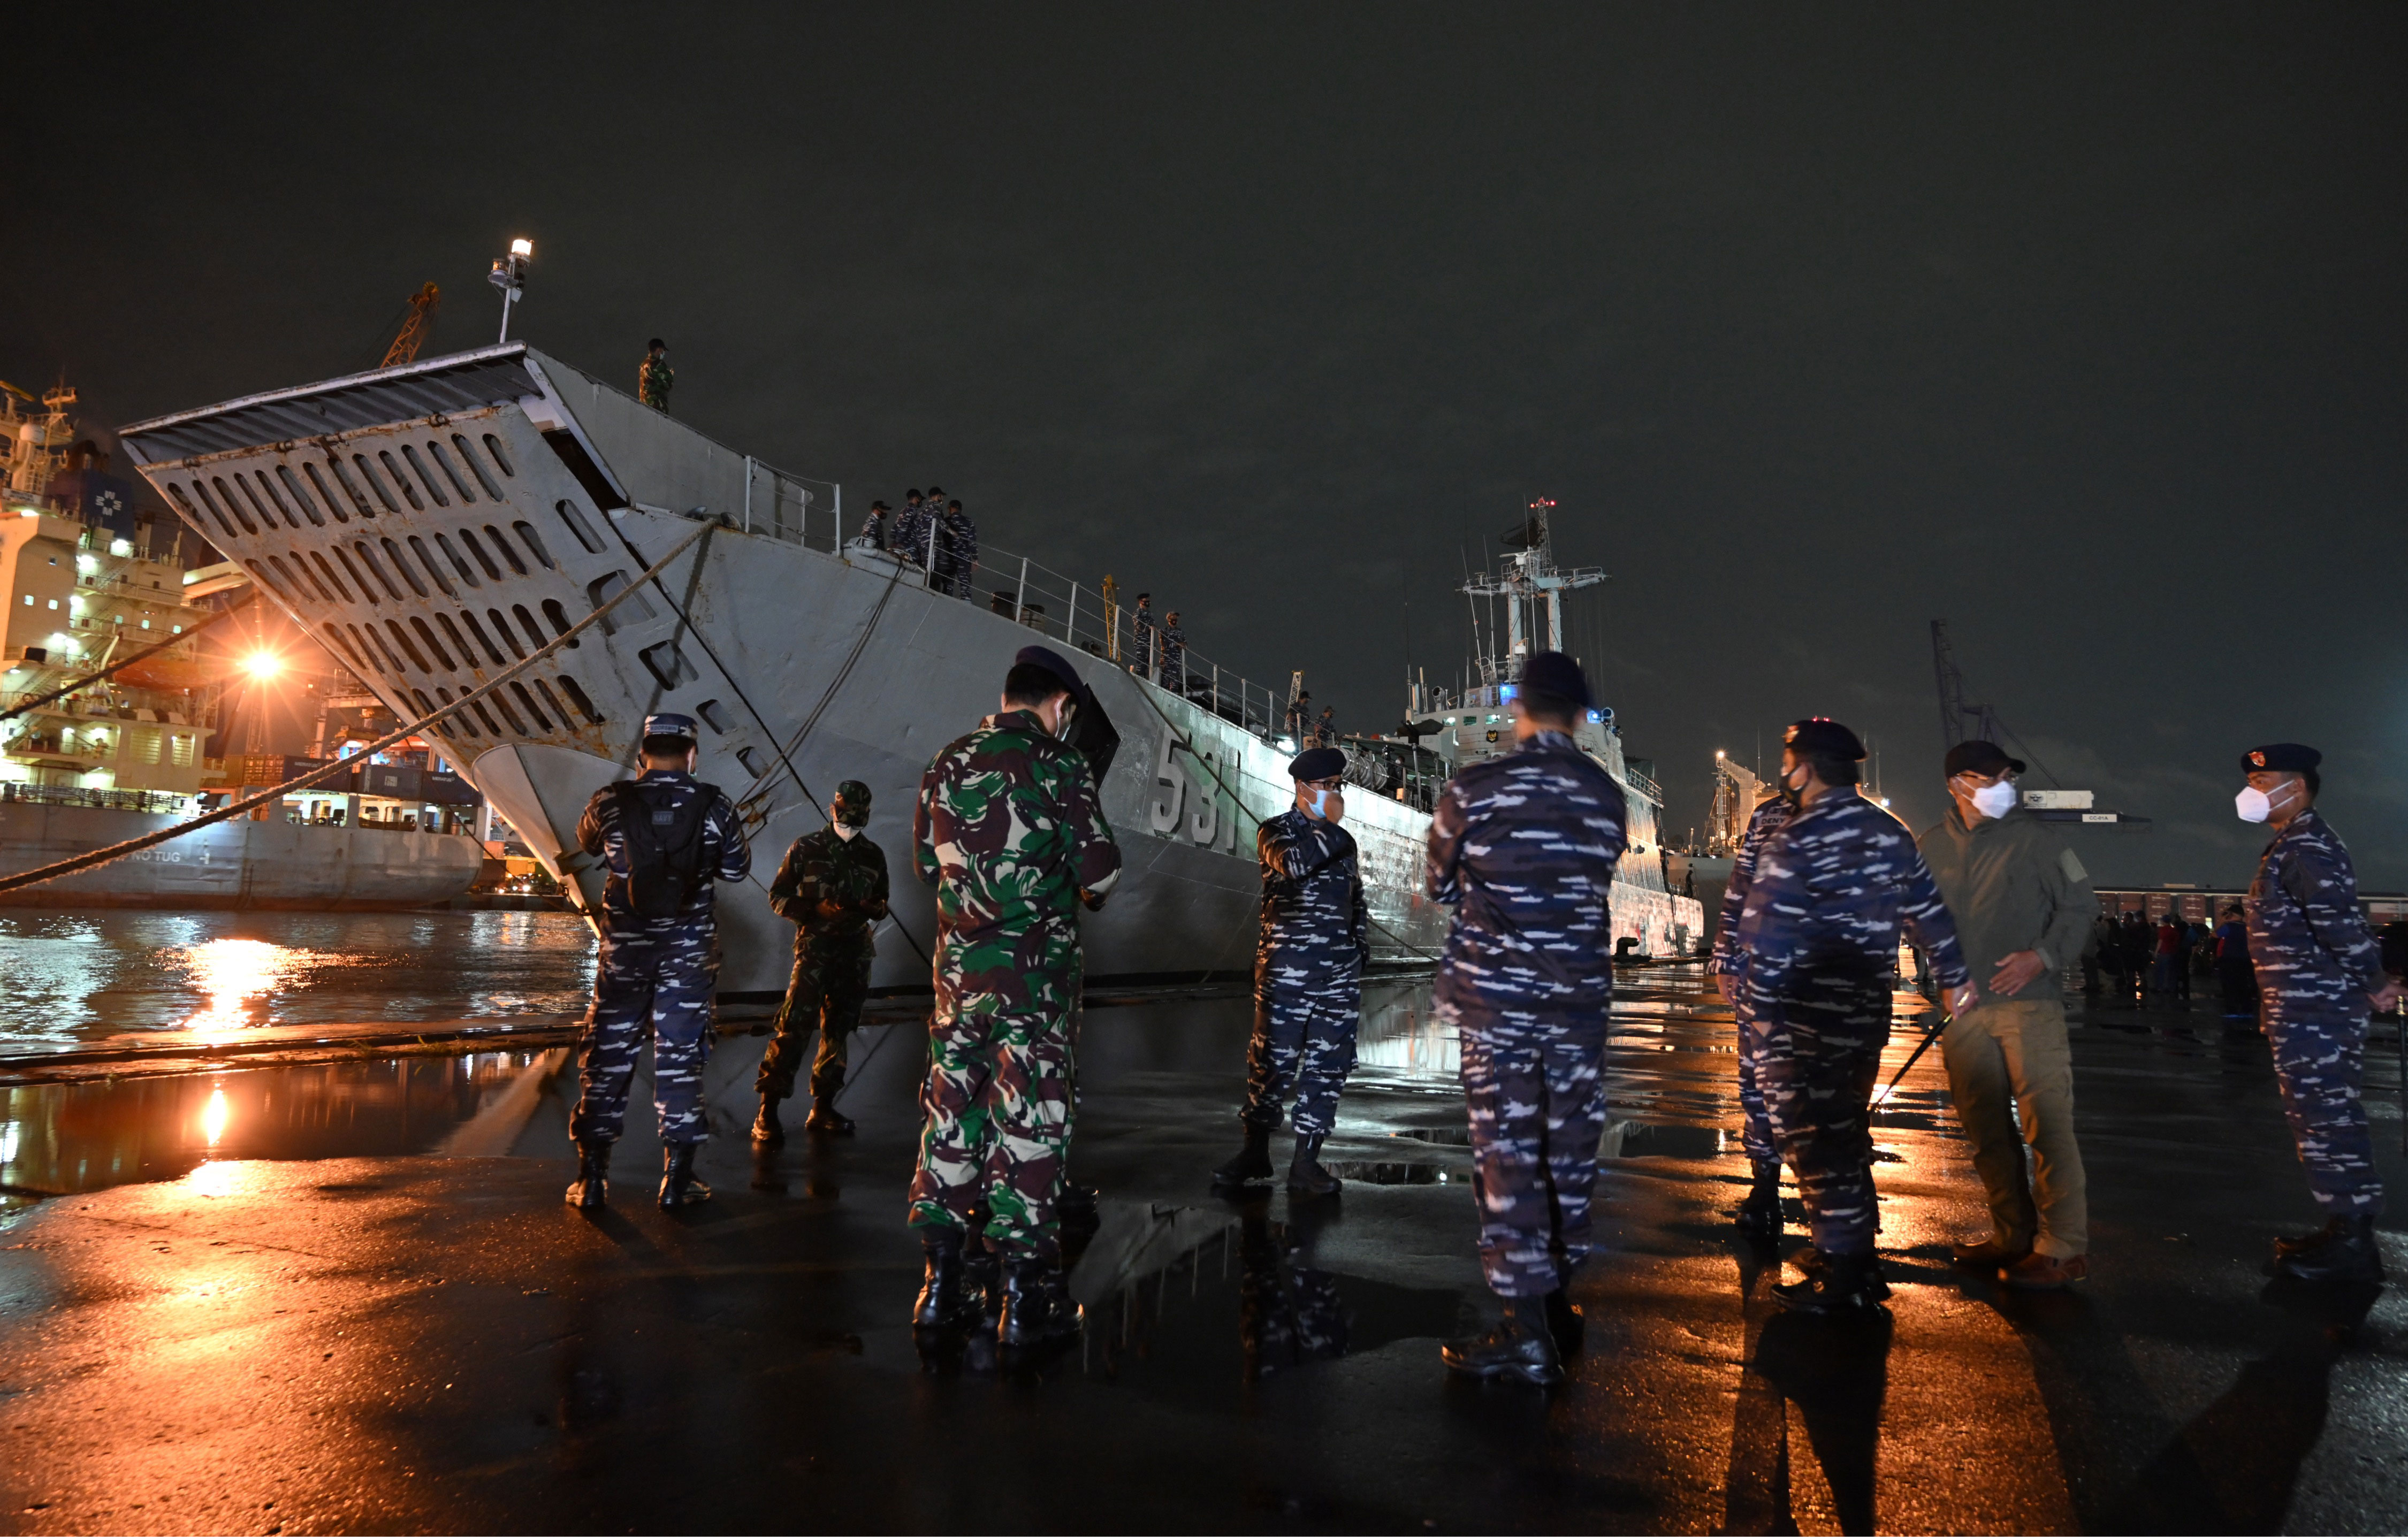 Navy personnel in Jakarta, Indonesia, oversee preparations for a search and rescue operation near the KRITelukGilimanuk(531) warship at Tanjung Priok port on January 9.